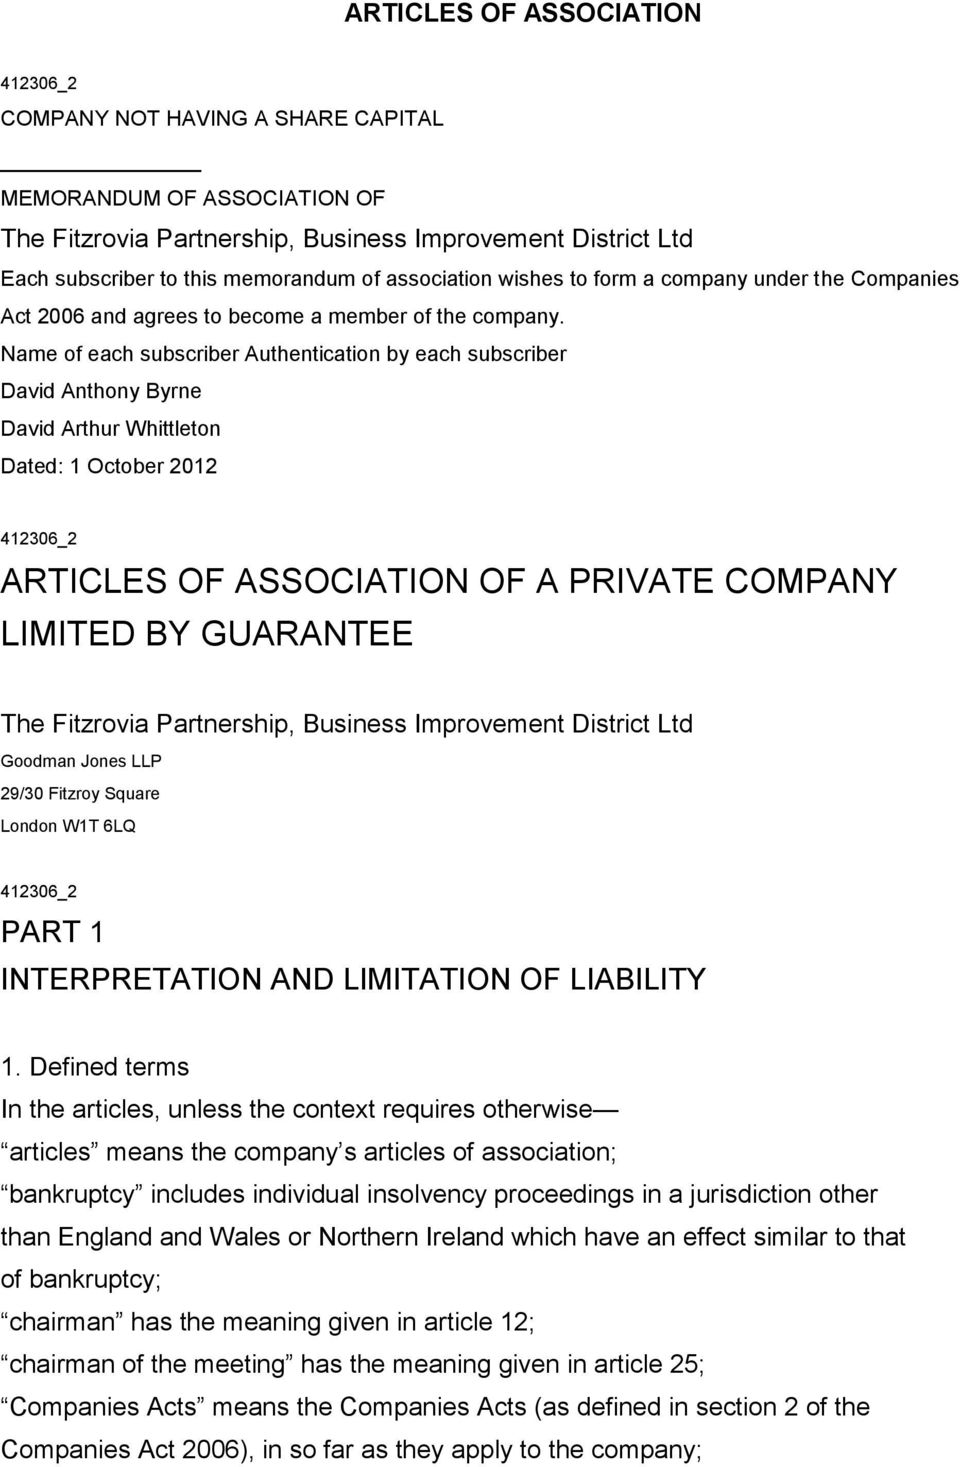 Name of each subscriber Authentication by each subscriber David Anthony Byrne David Arthur Whittleton Dated: 1 October 2012 ARTICLES OF ASSOCIATION OF A PRIVATE COMPANY LIMITED BY GUARANTEE The